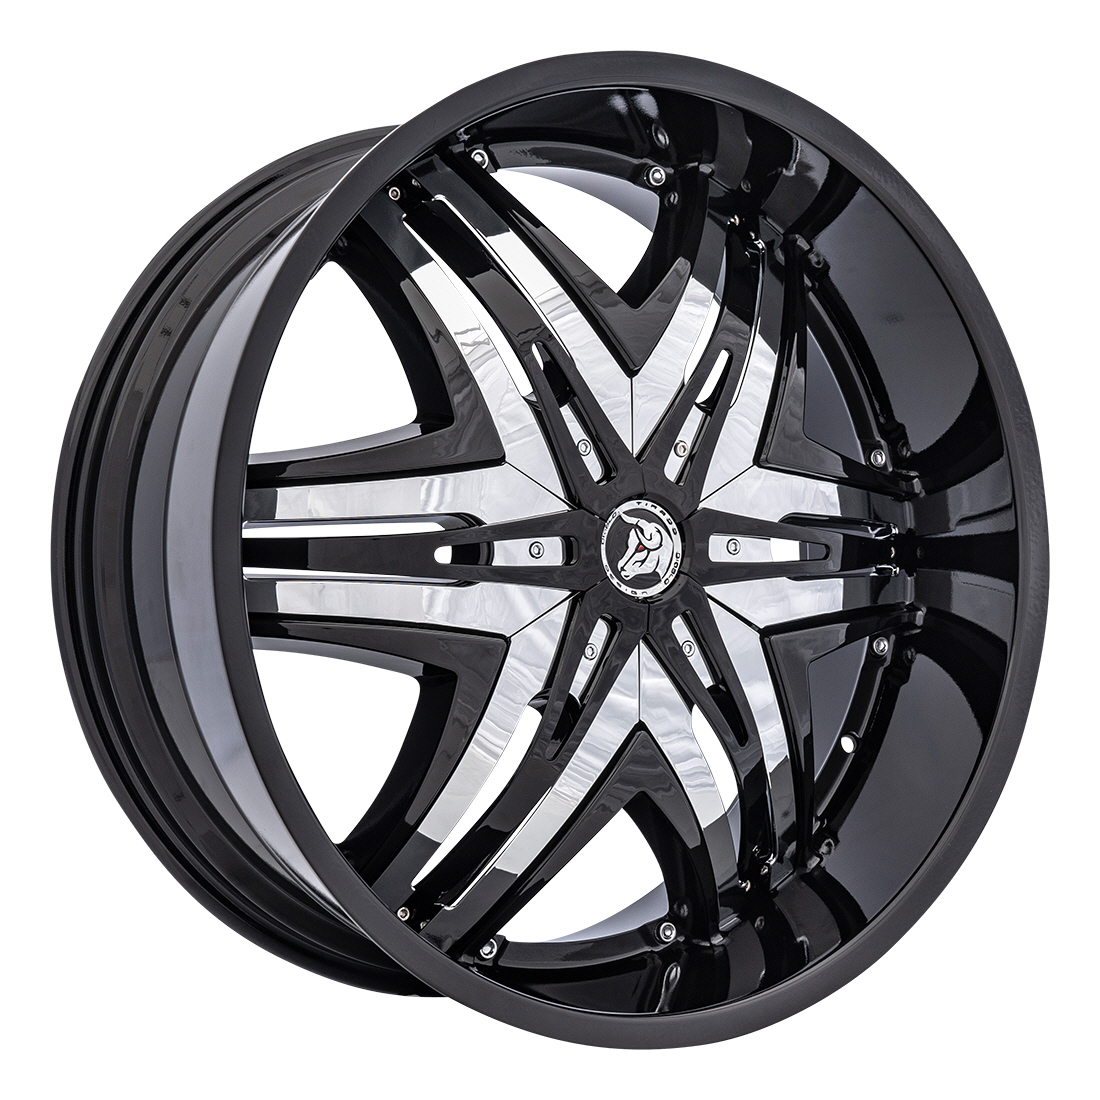 ELITE  WHEELS AND RIMS PACKAGES